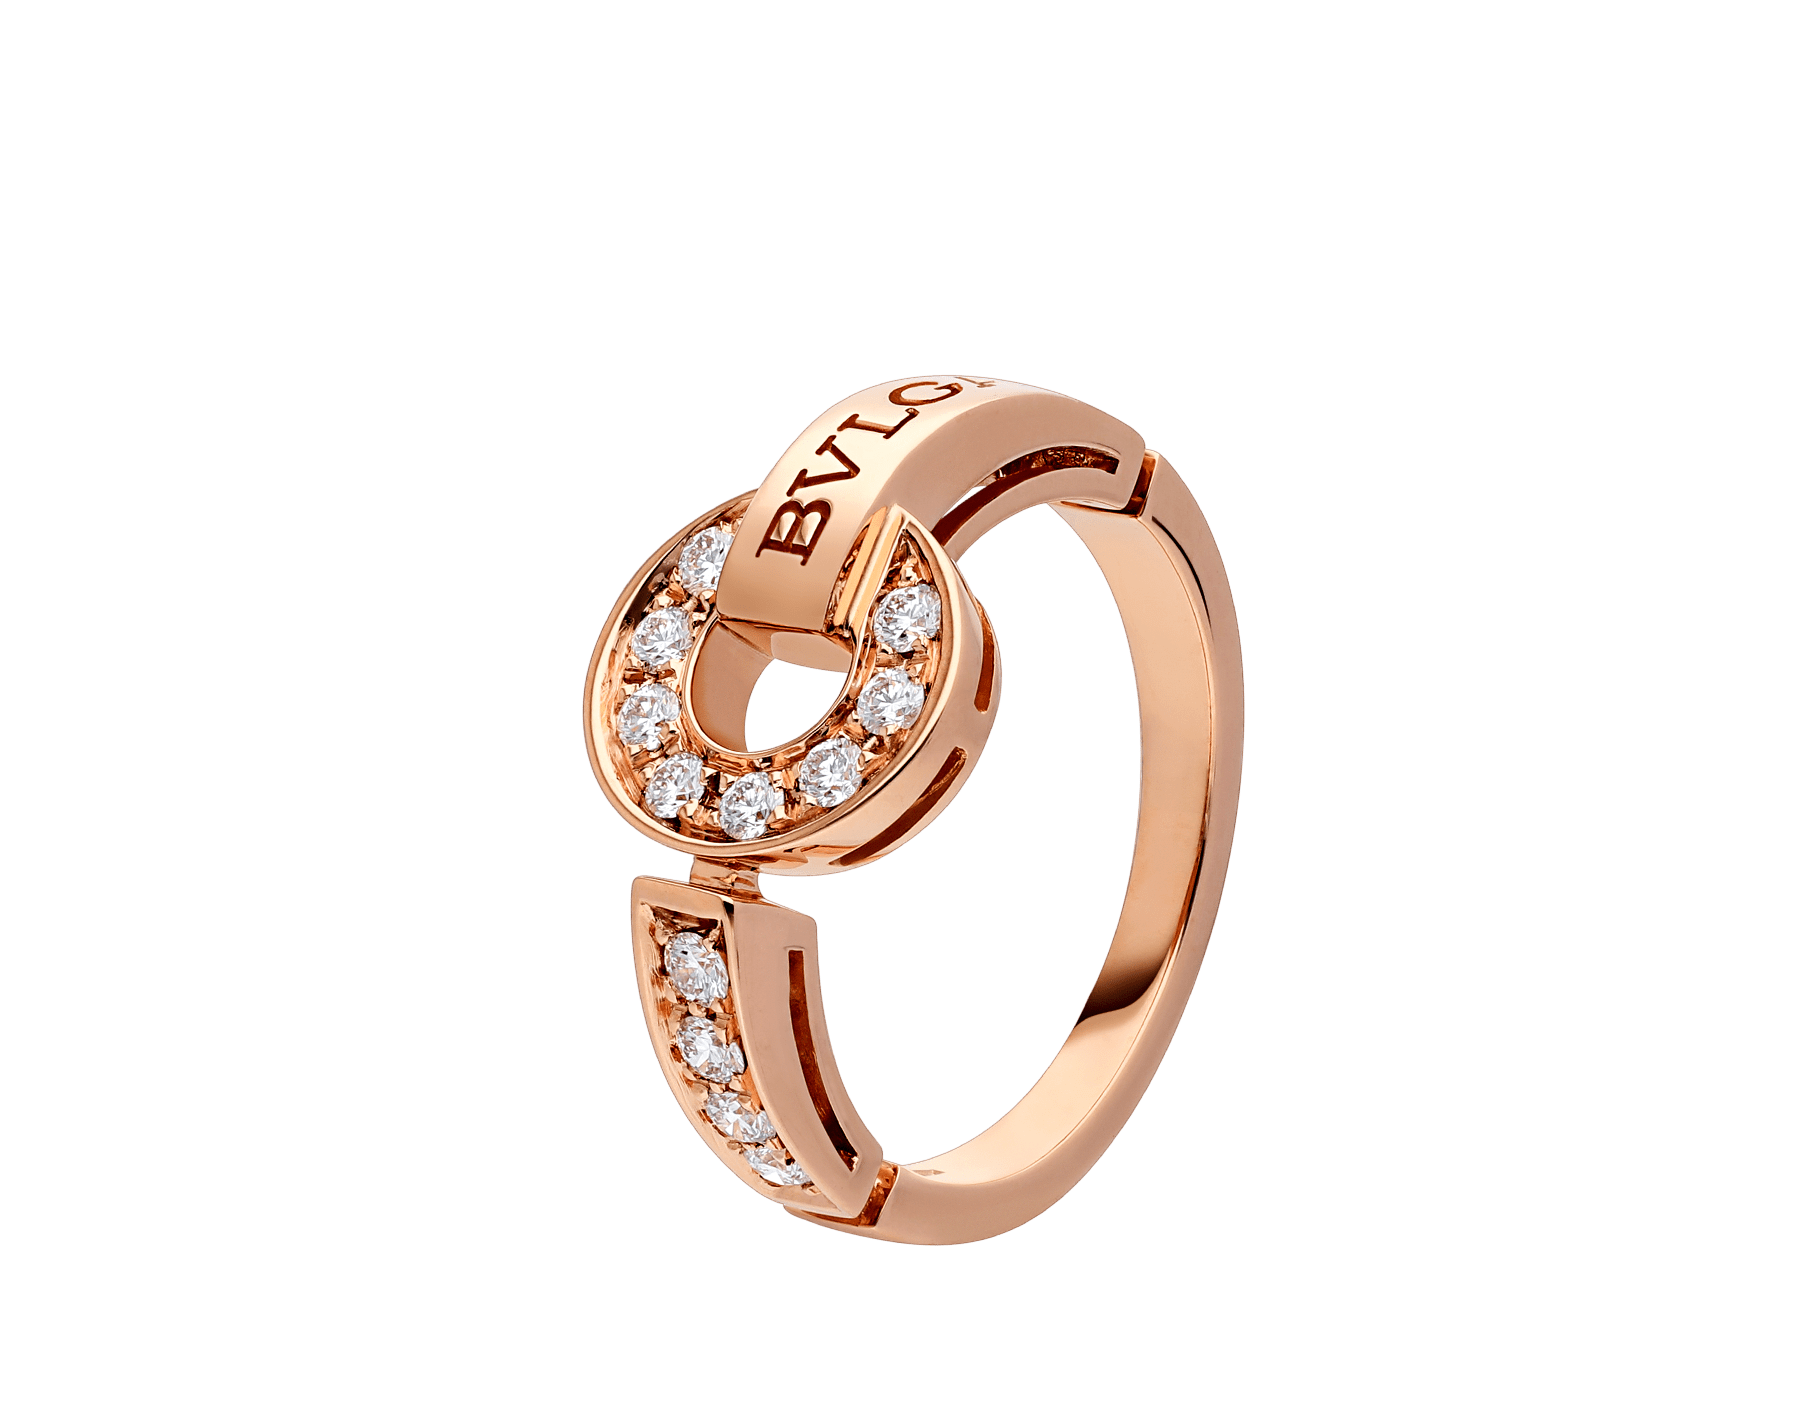 BVLGARI BVLGARI 18 kt rose gold ring set with pavé diamonds AN855854 image 1